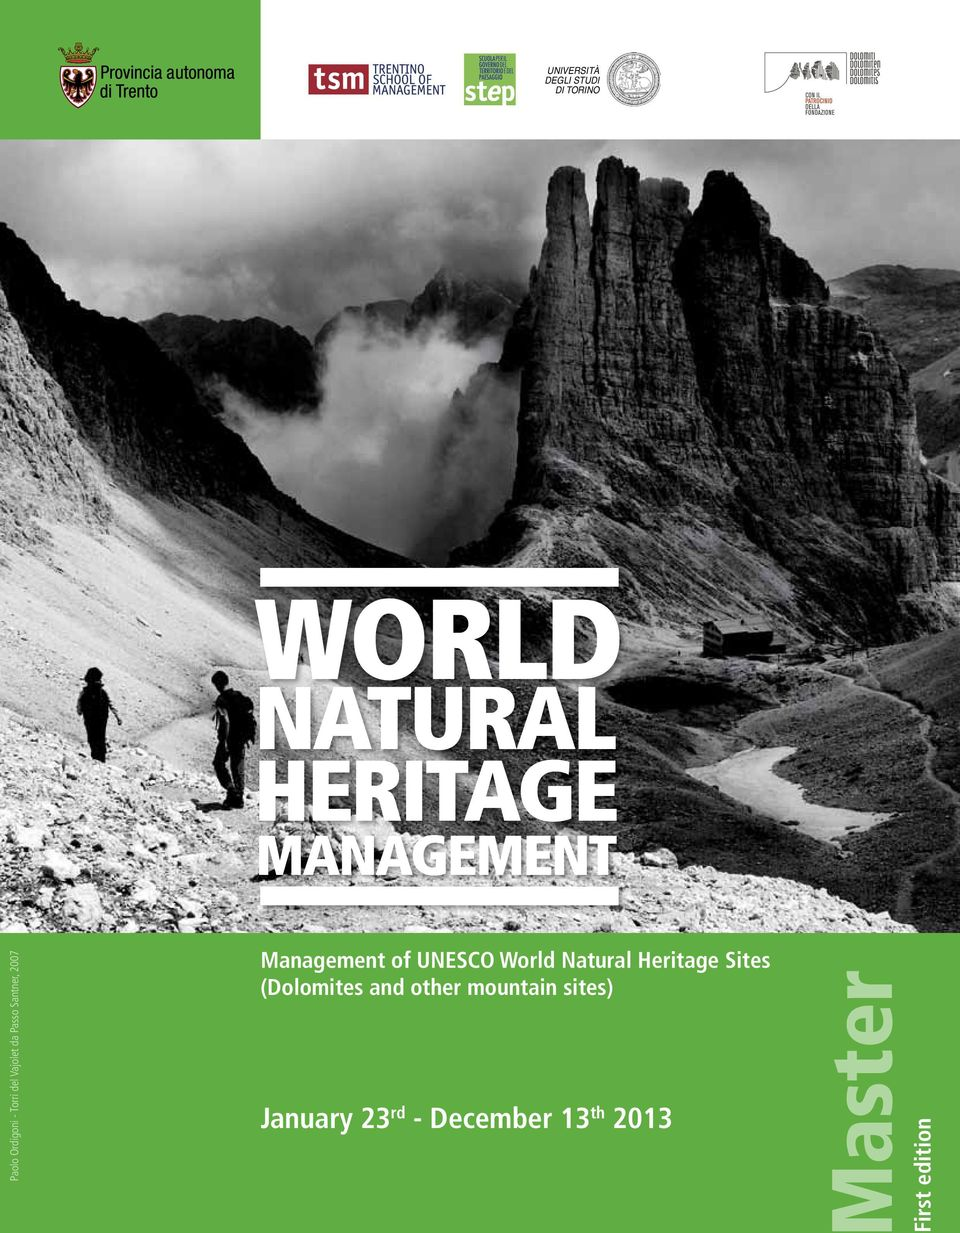 Management of UNESCO World Natural Heritage Sites (Dolomites and